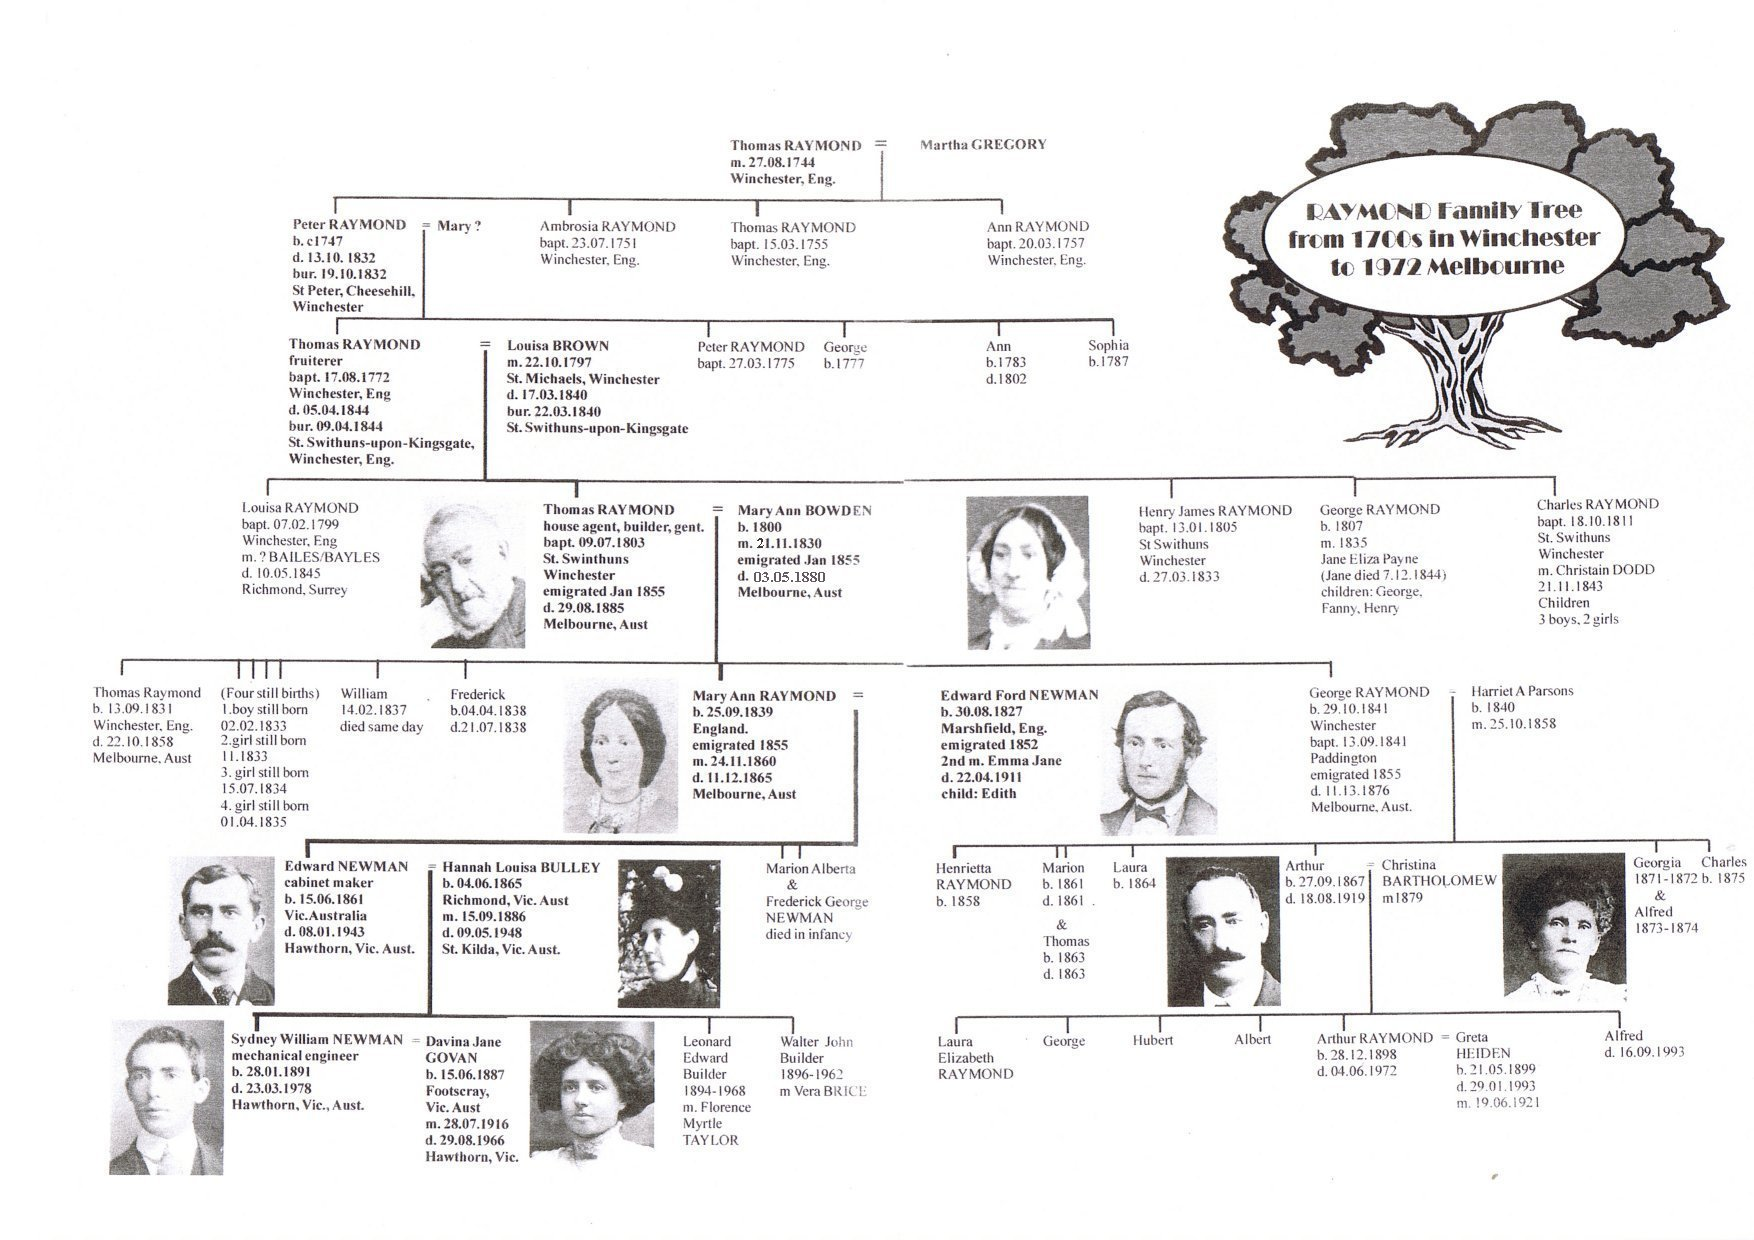 Basic Family Tree Descendants Of The Conqueror William messages and several